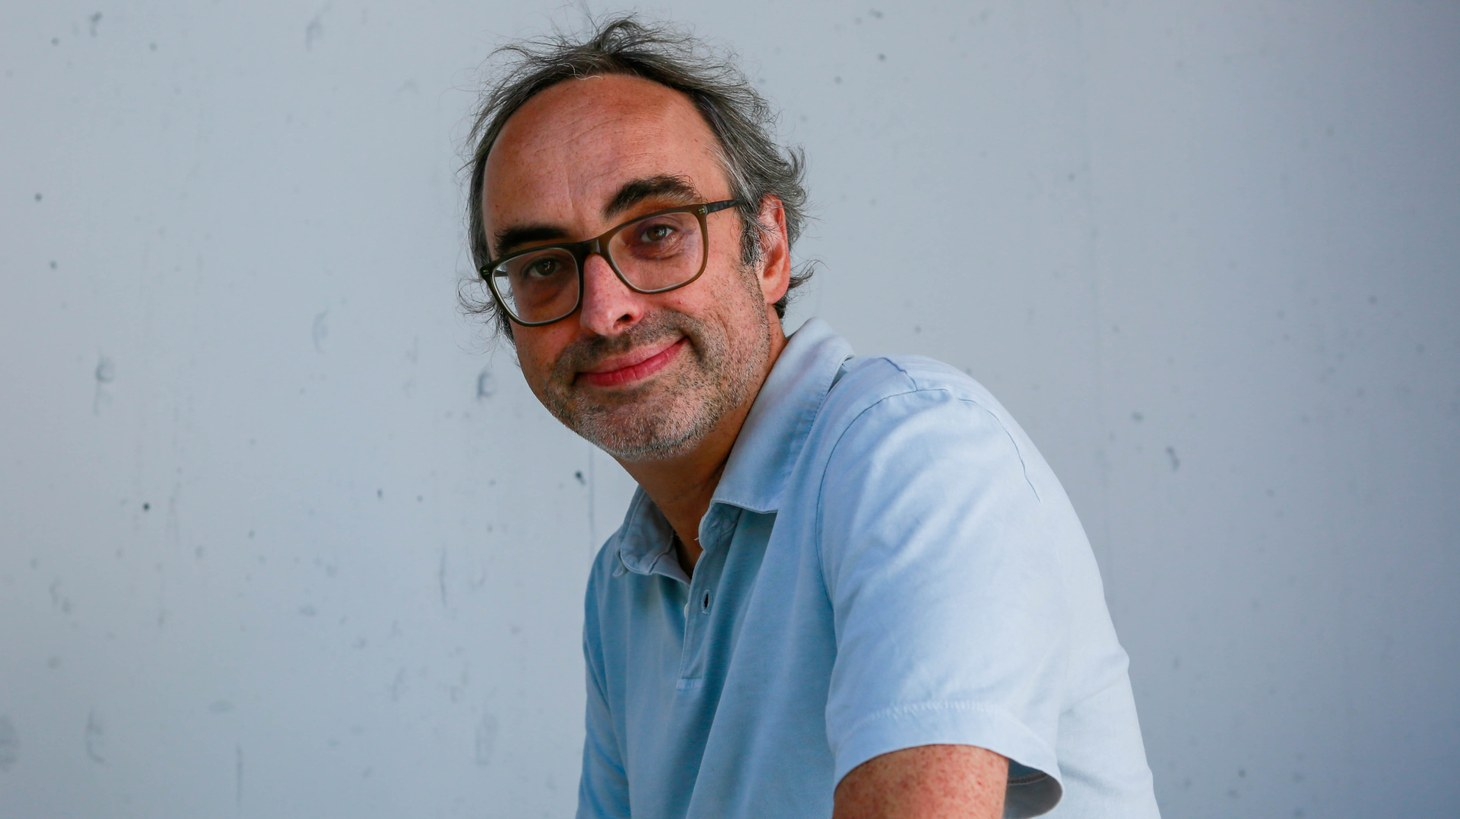 Gary Shteyngart's Lake Success is about a hedge-fund manager billionaire who has lost track of what he once cared about and loved.